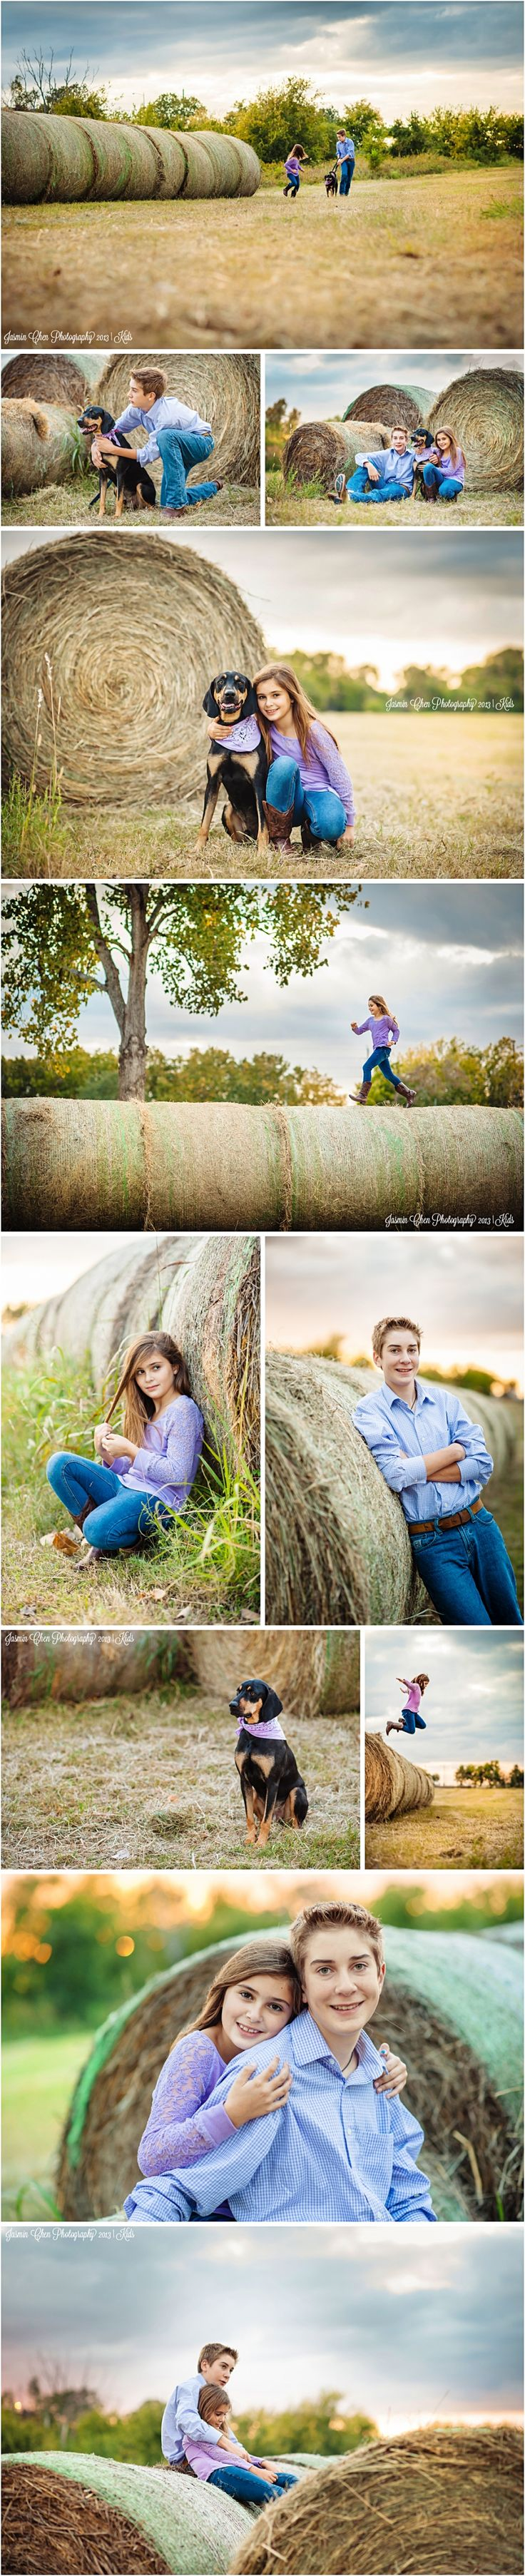 Kids photo sessions with pet | Jasmin Chen Photography